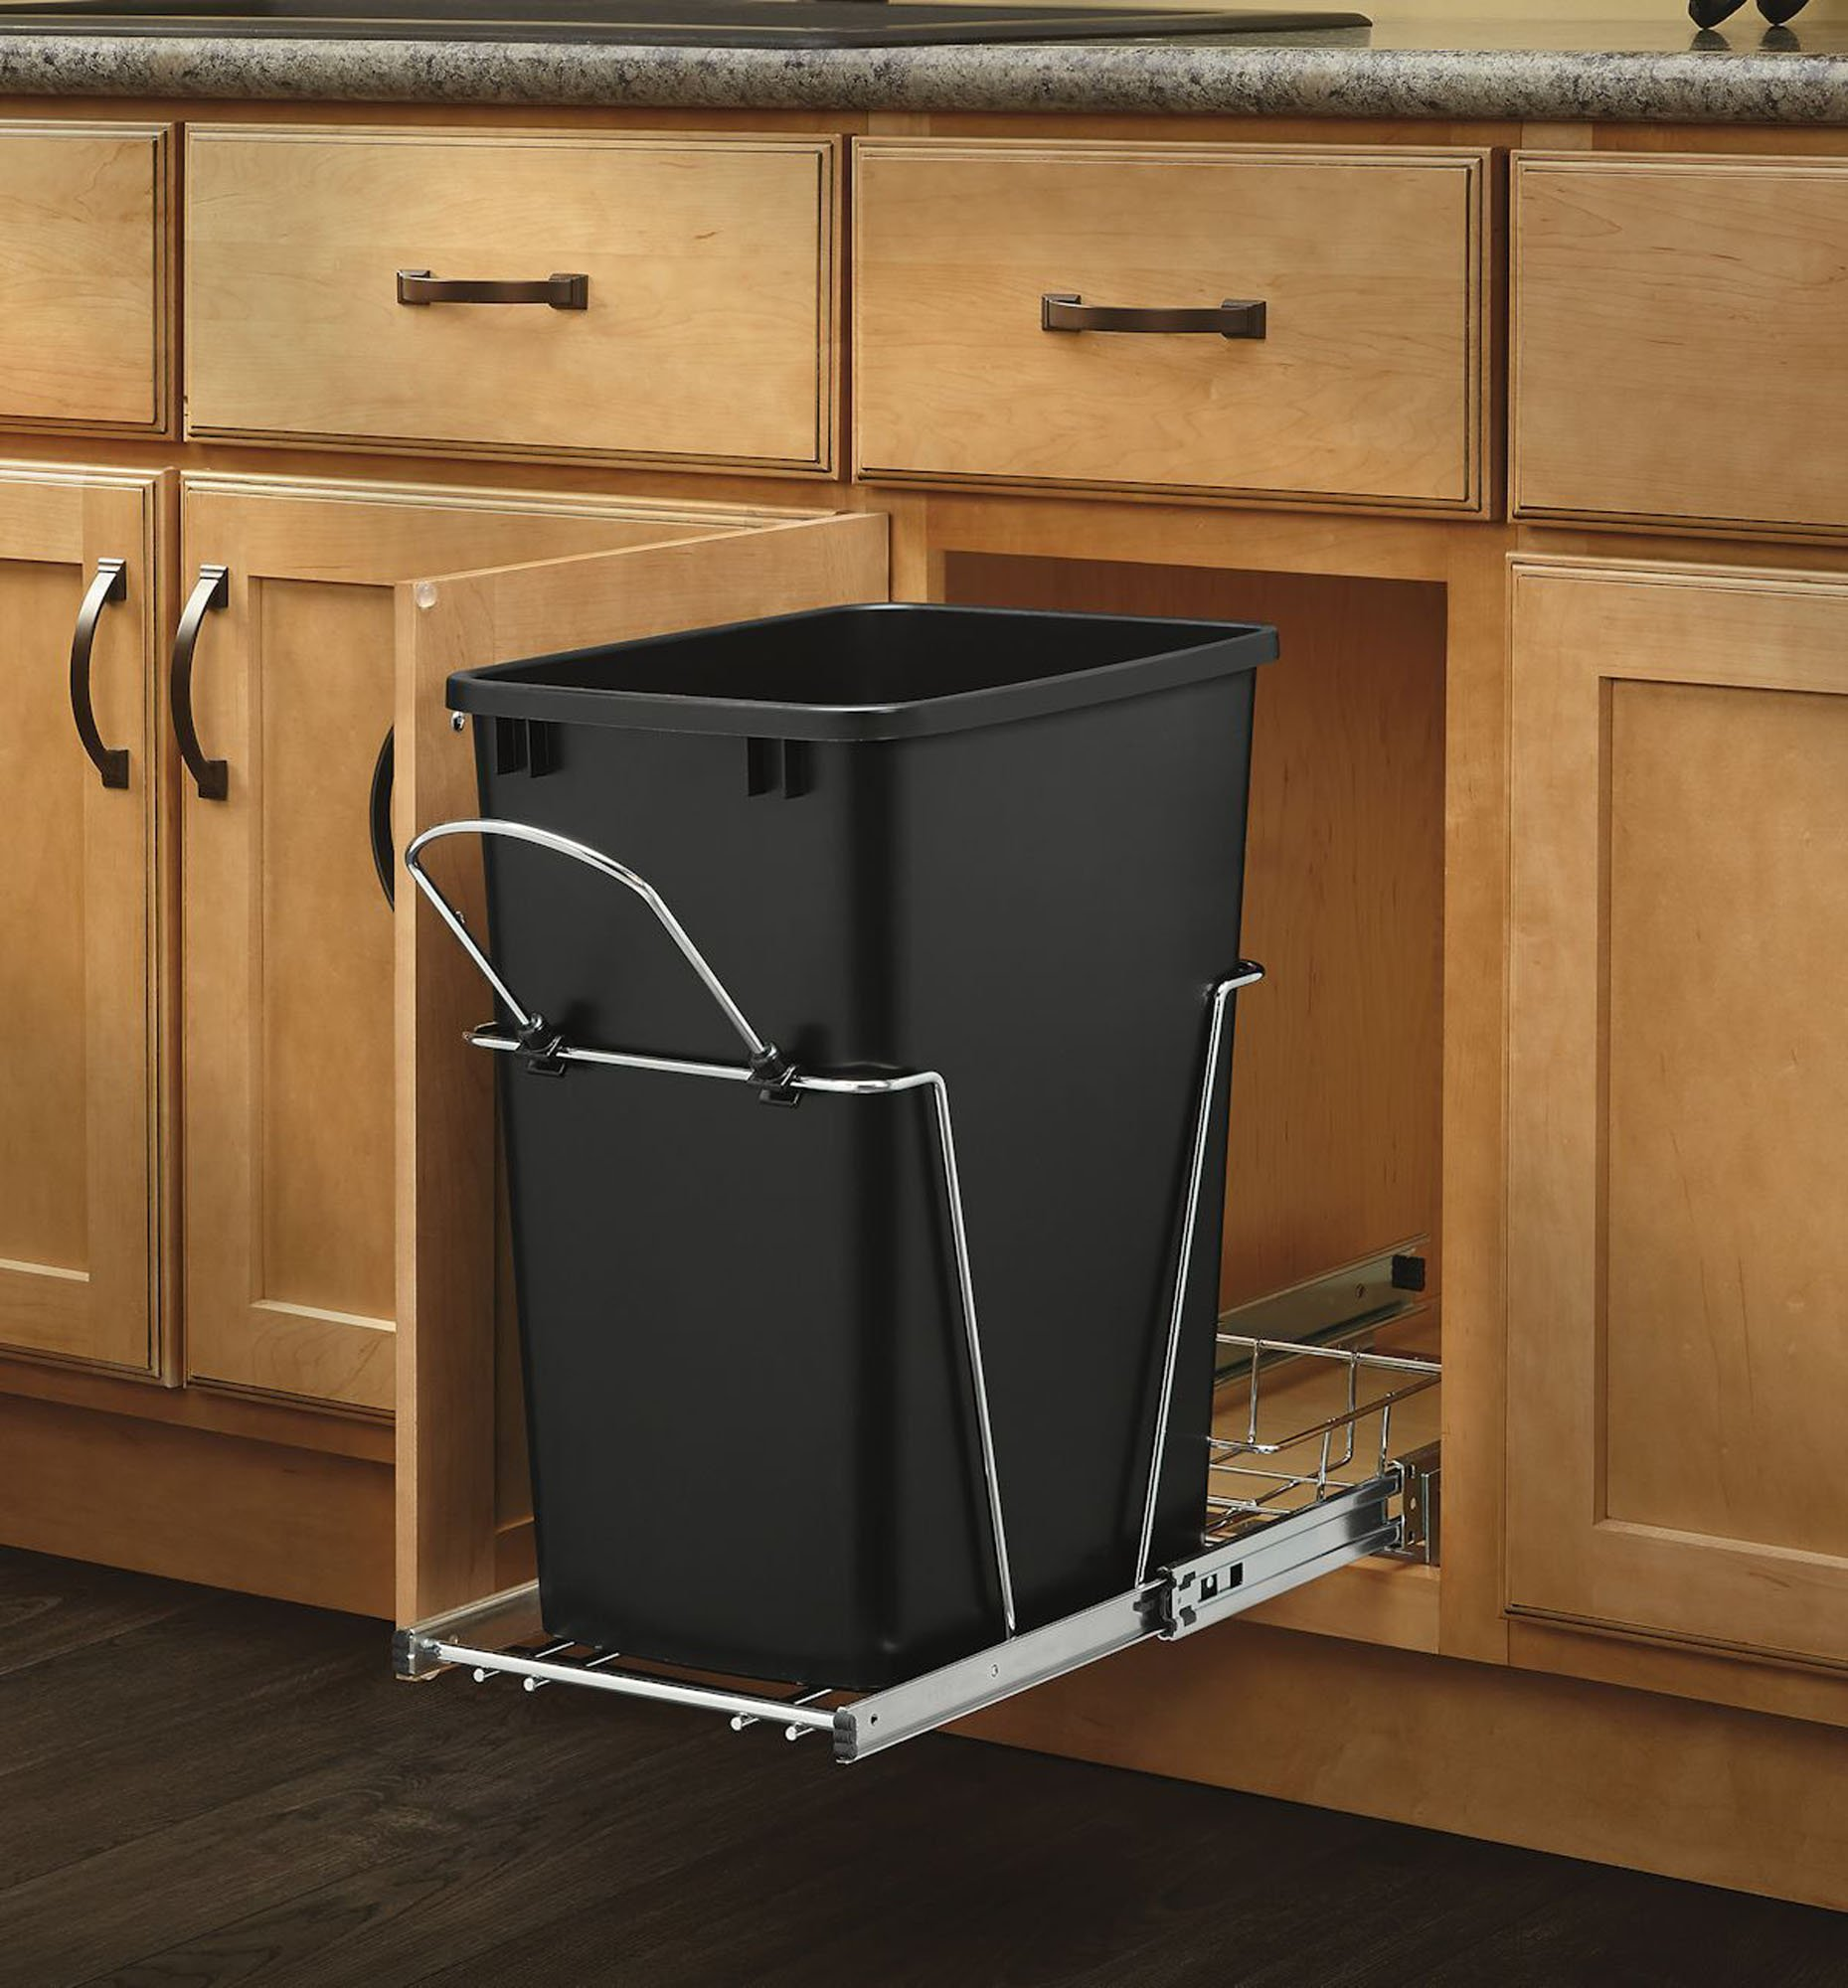 Kitchen Garbage Can Cabinet: Rev A Shelf Pull Out Trash Can Garbage Bin Waste Container